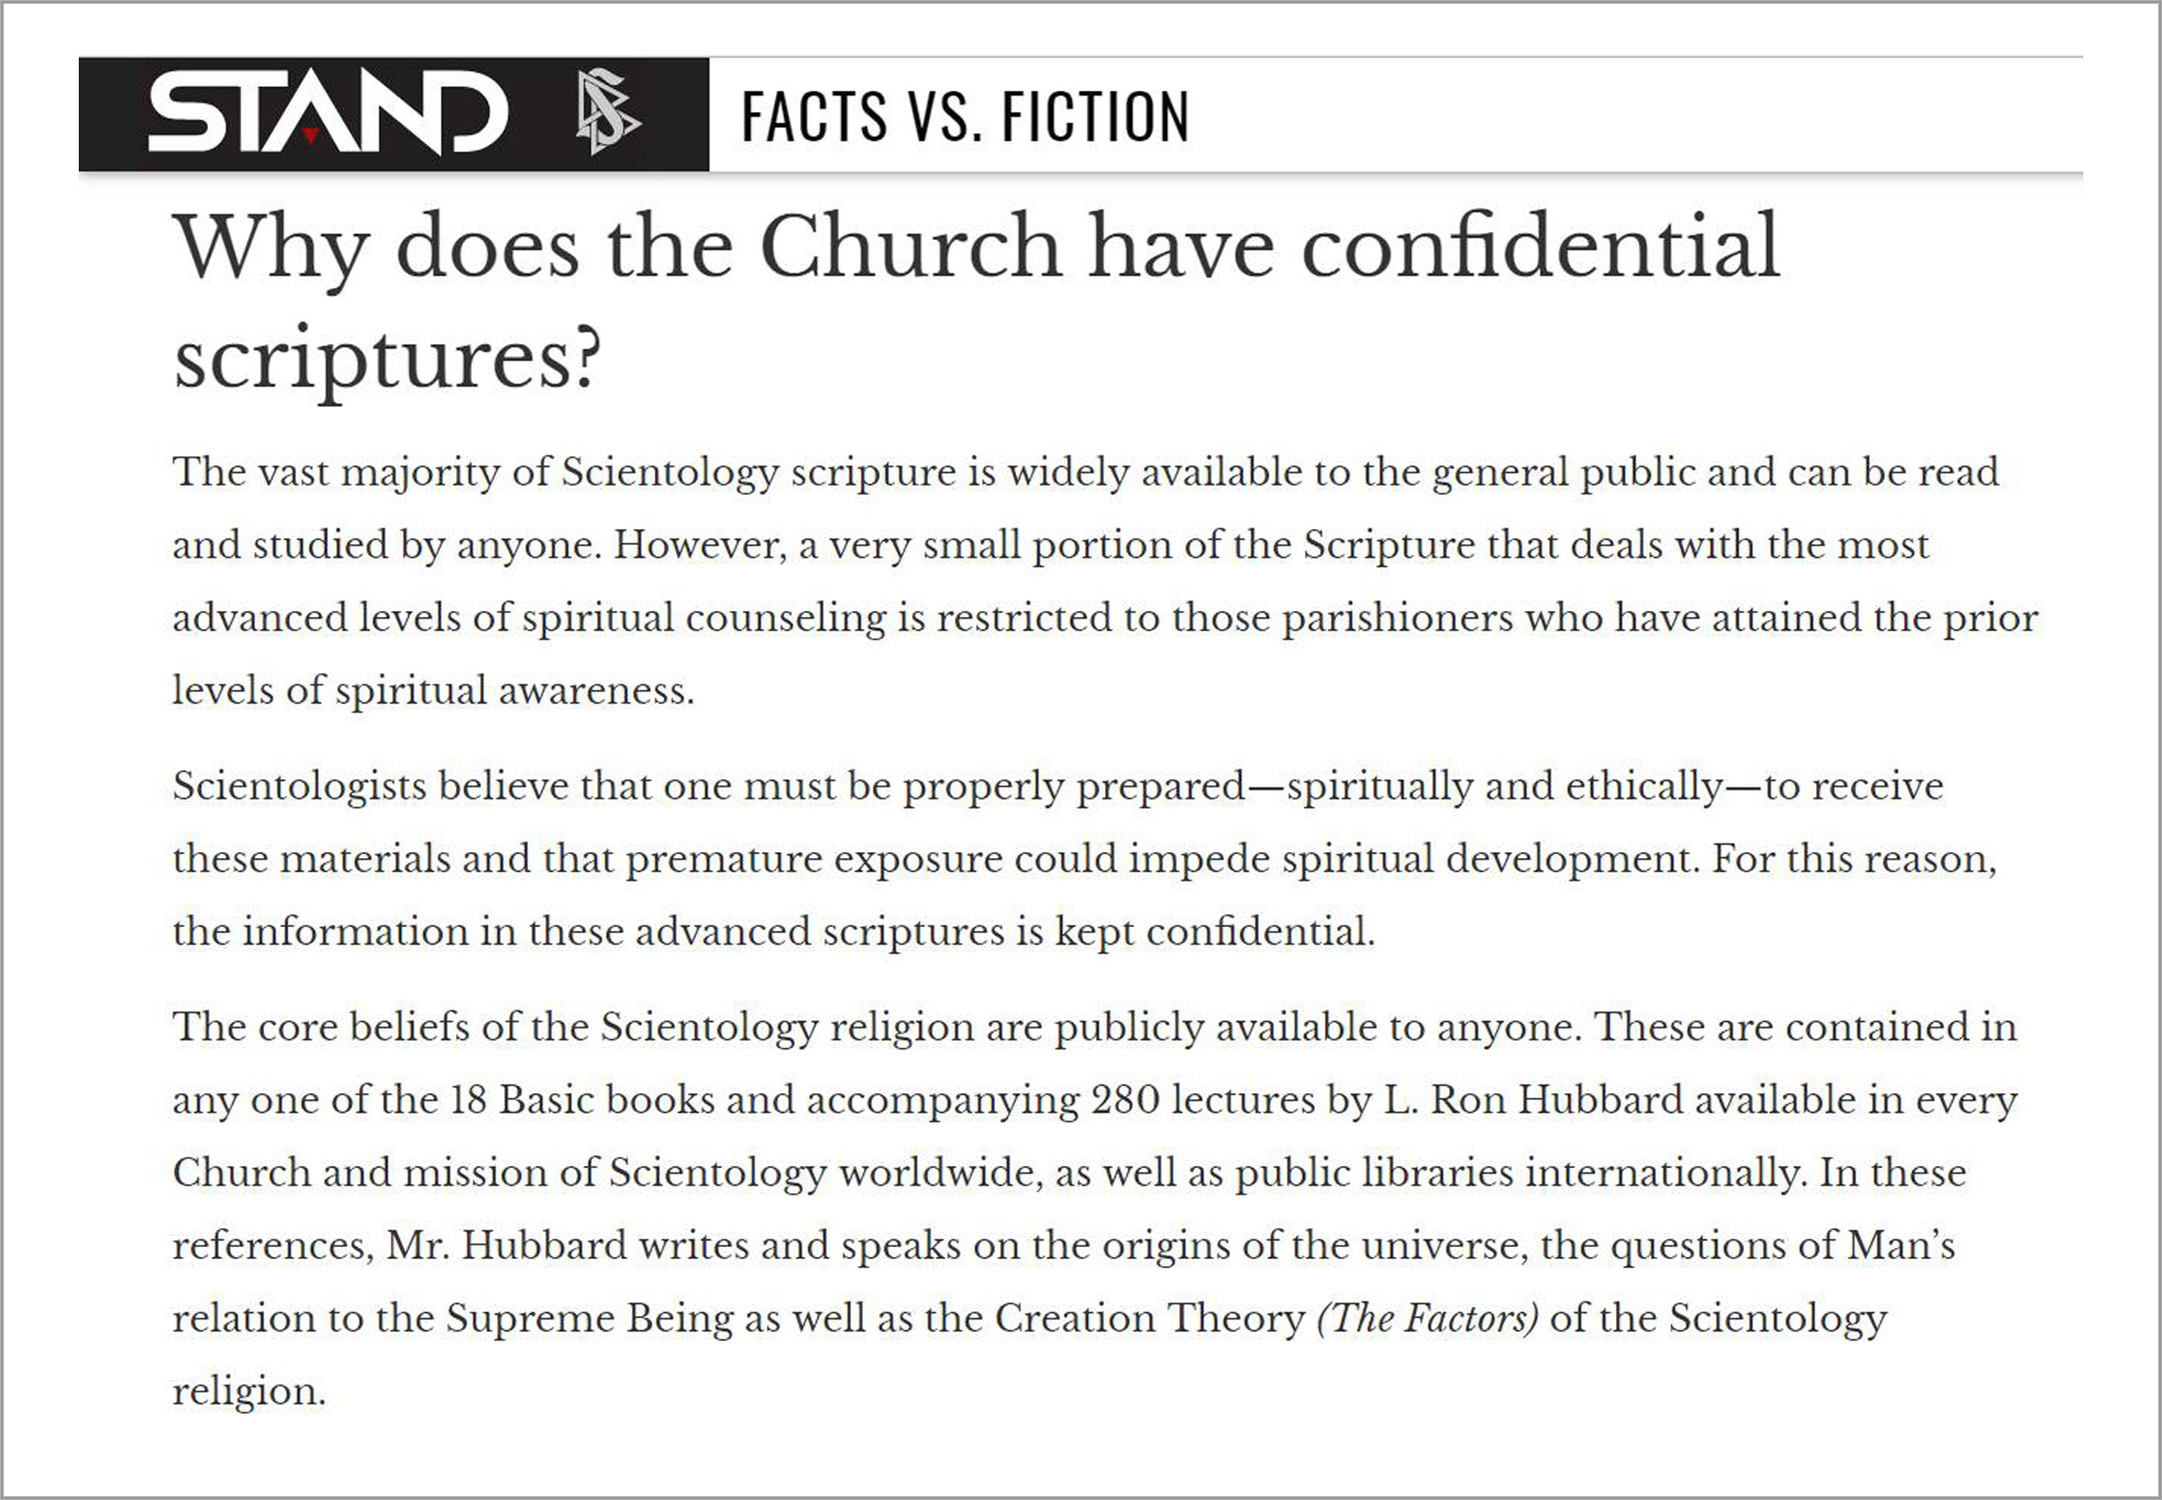 The STAND League explains Scientology's confidential scriptures .  Screenshot captured 2017-11-20.